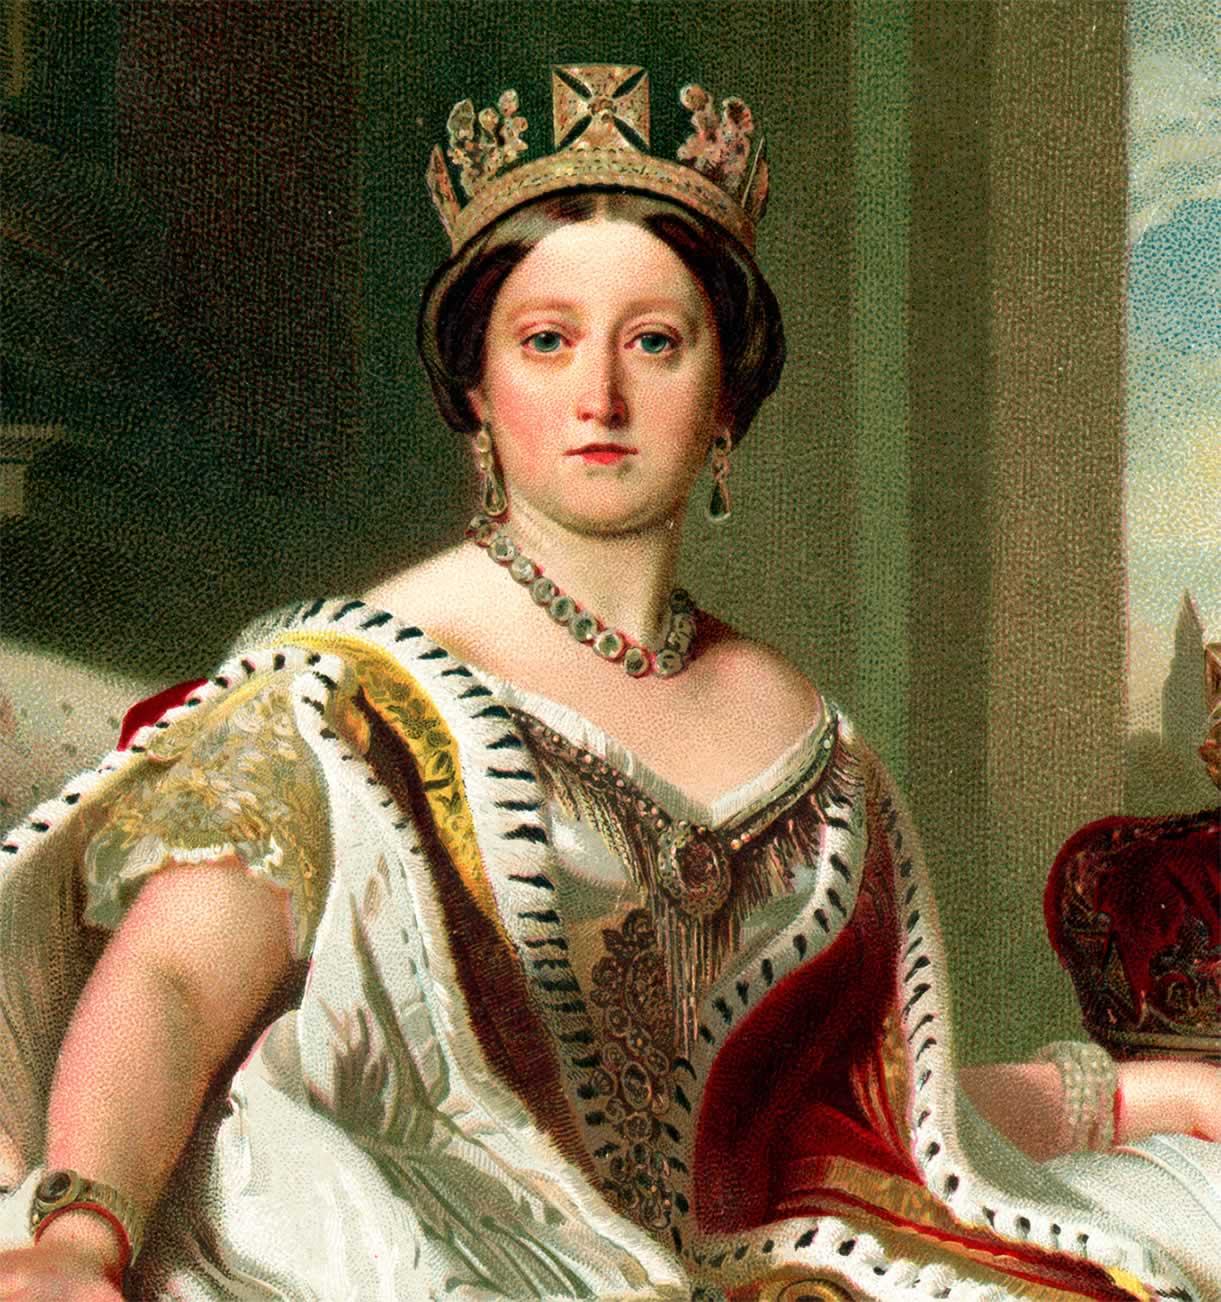 Painting of Queen Victoria.